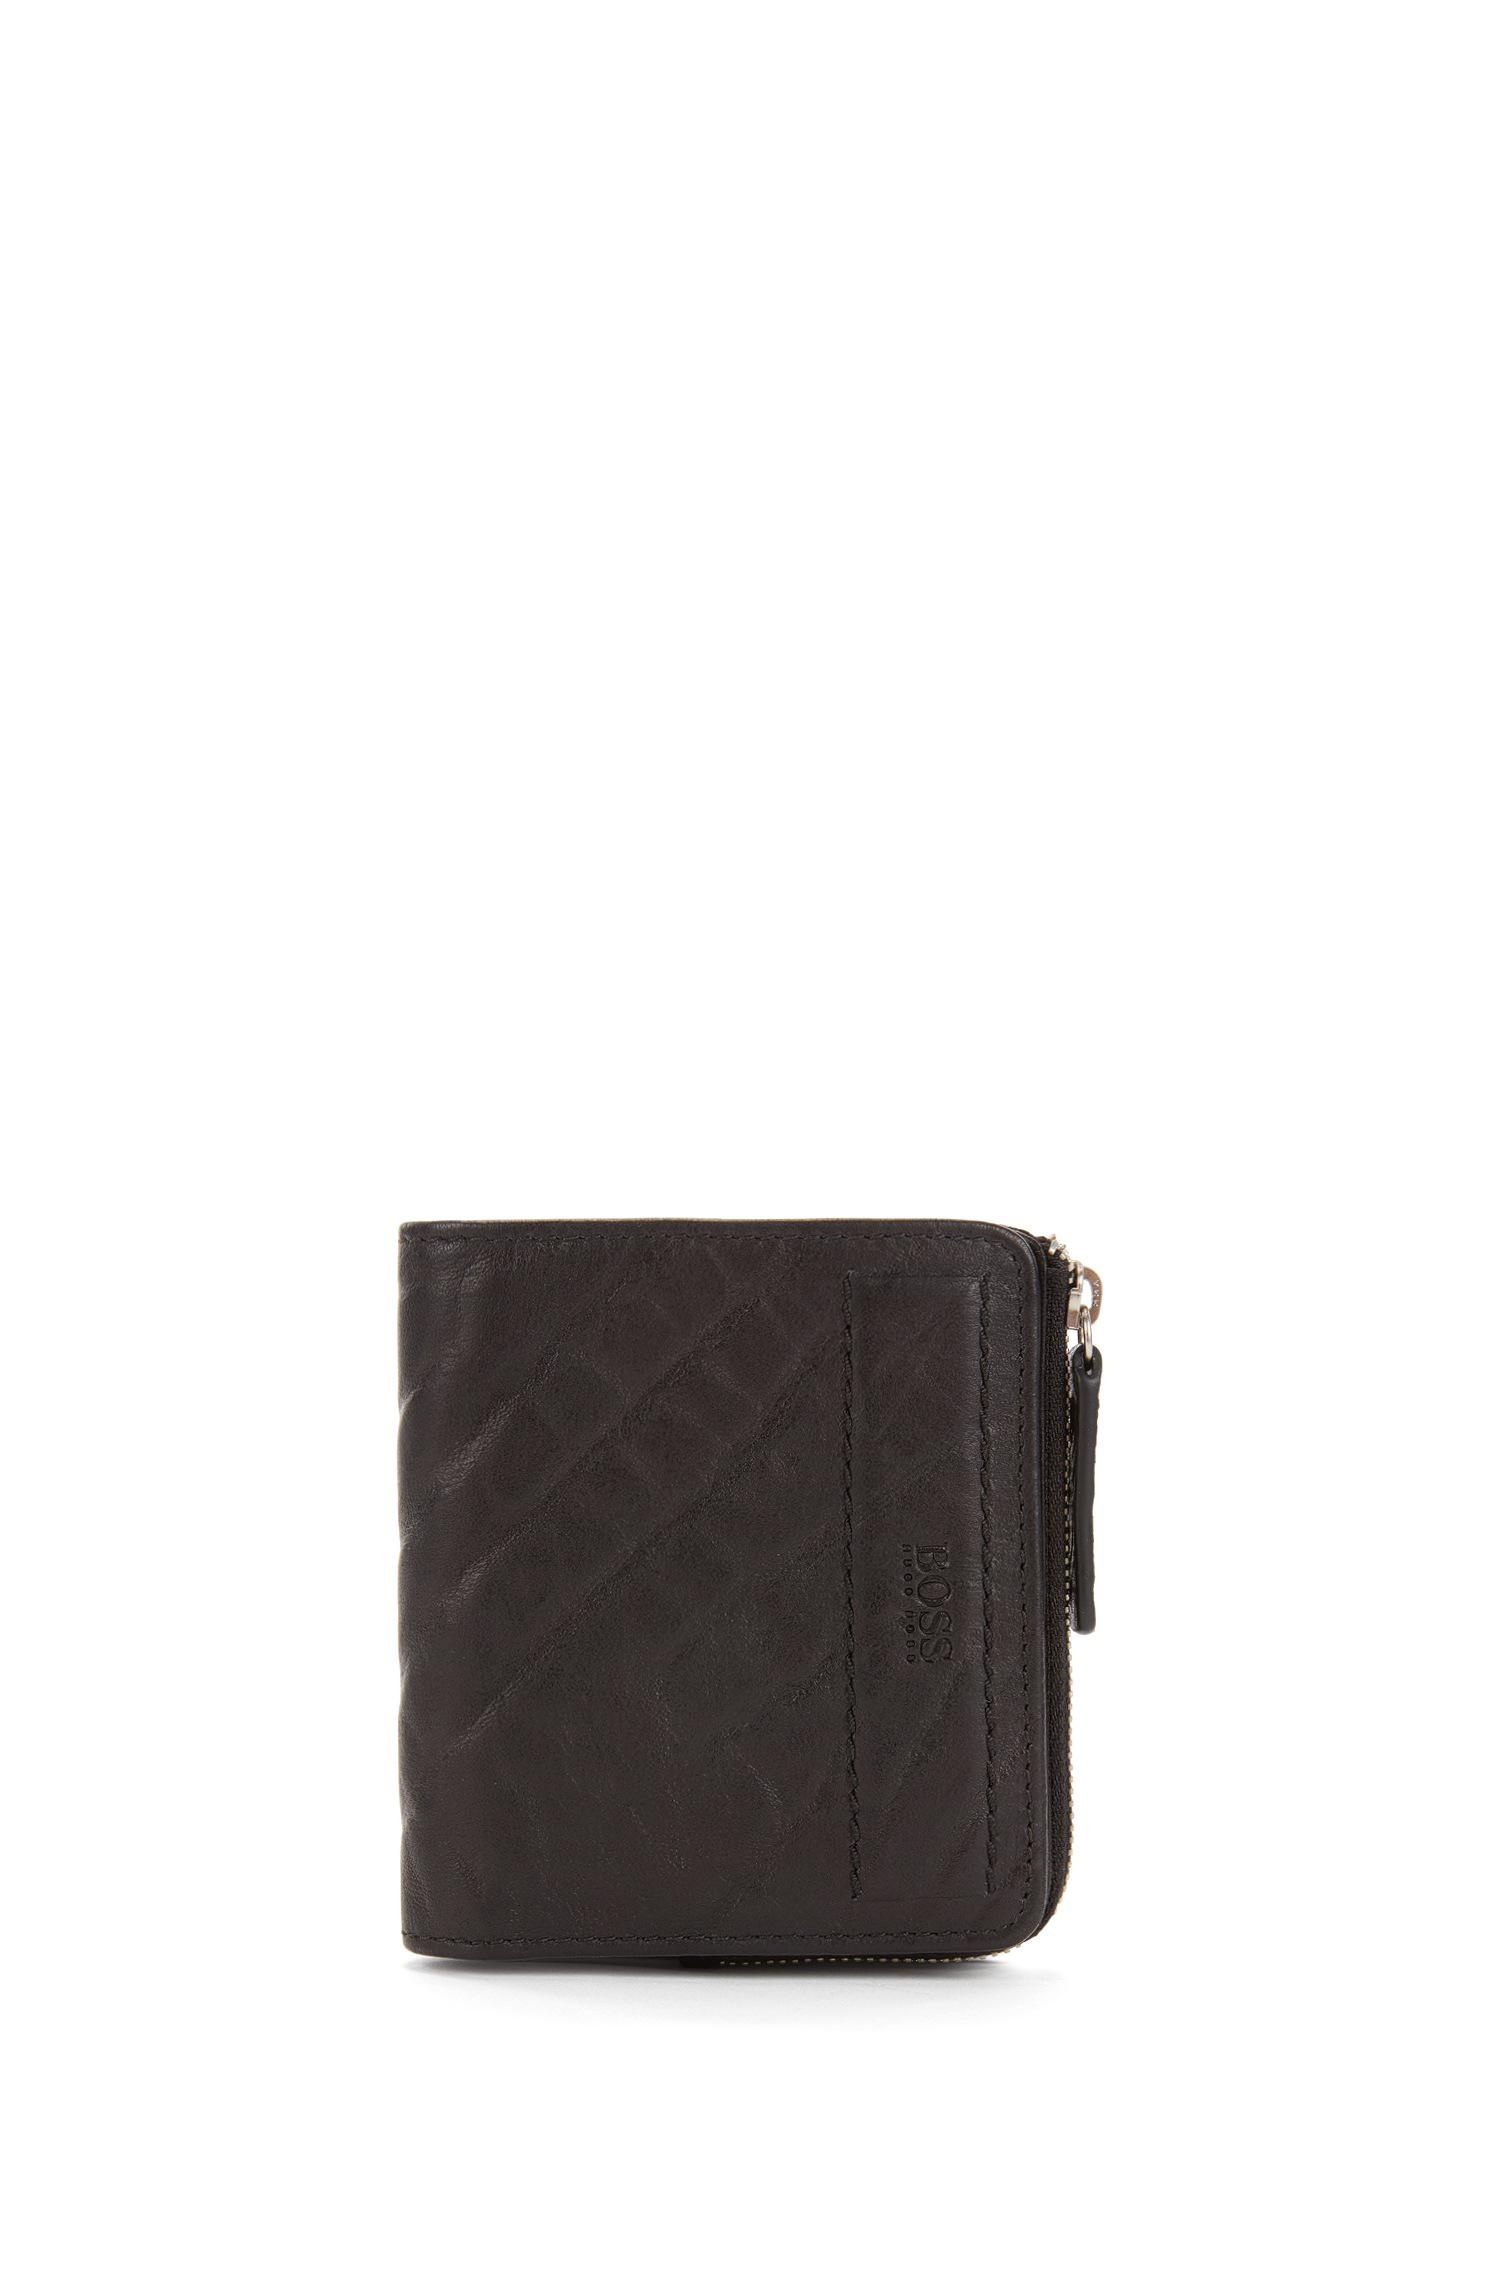 d21d914f0c BOSS Orange Small Zip-around Wallet In Grained Leather in Black for ...